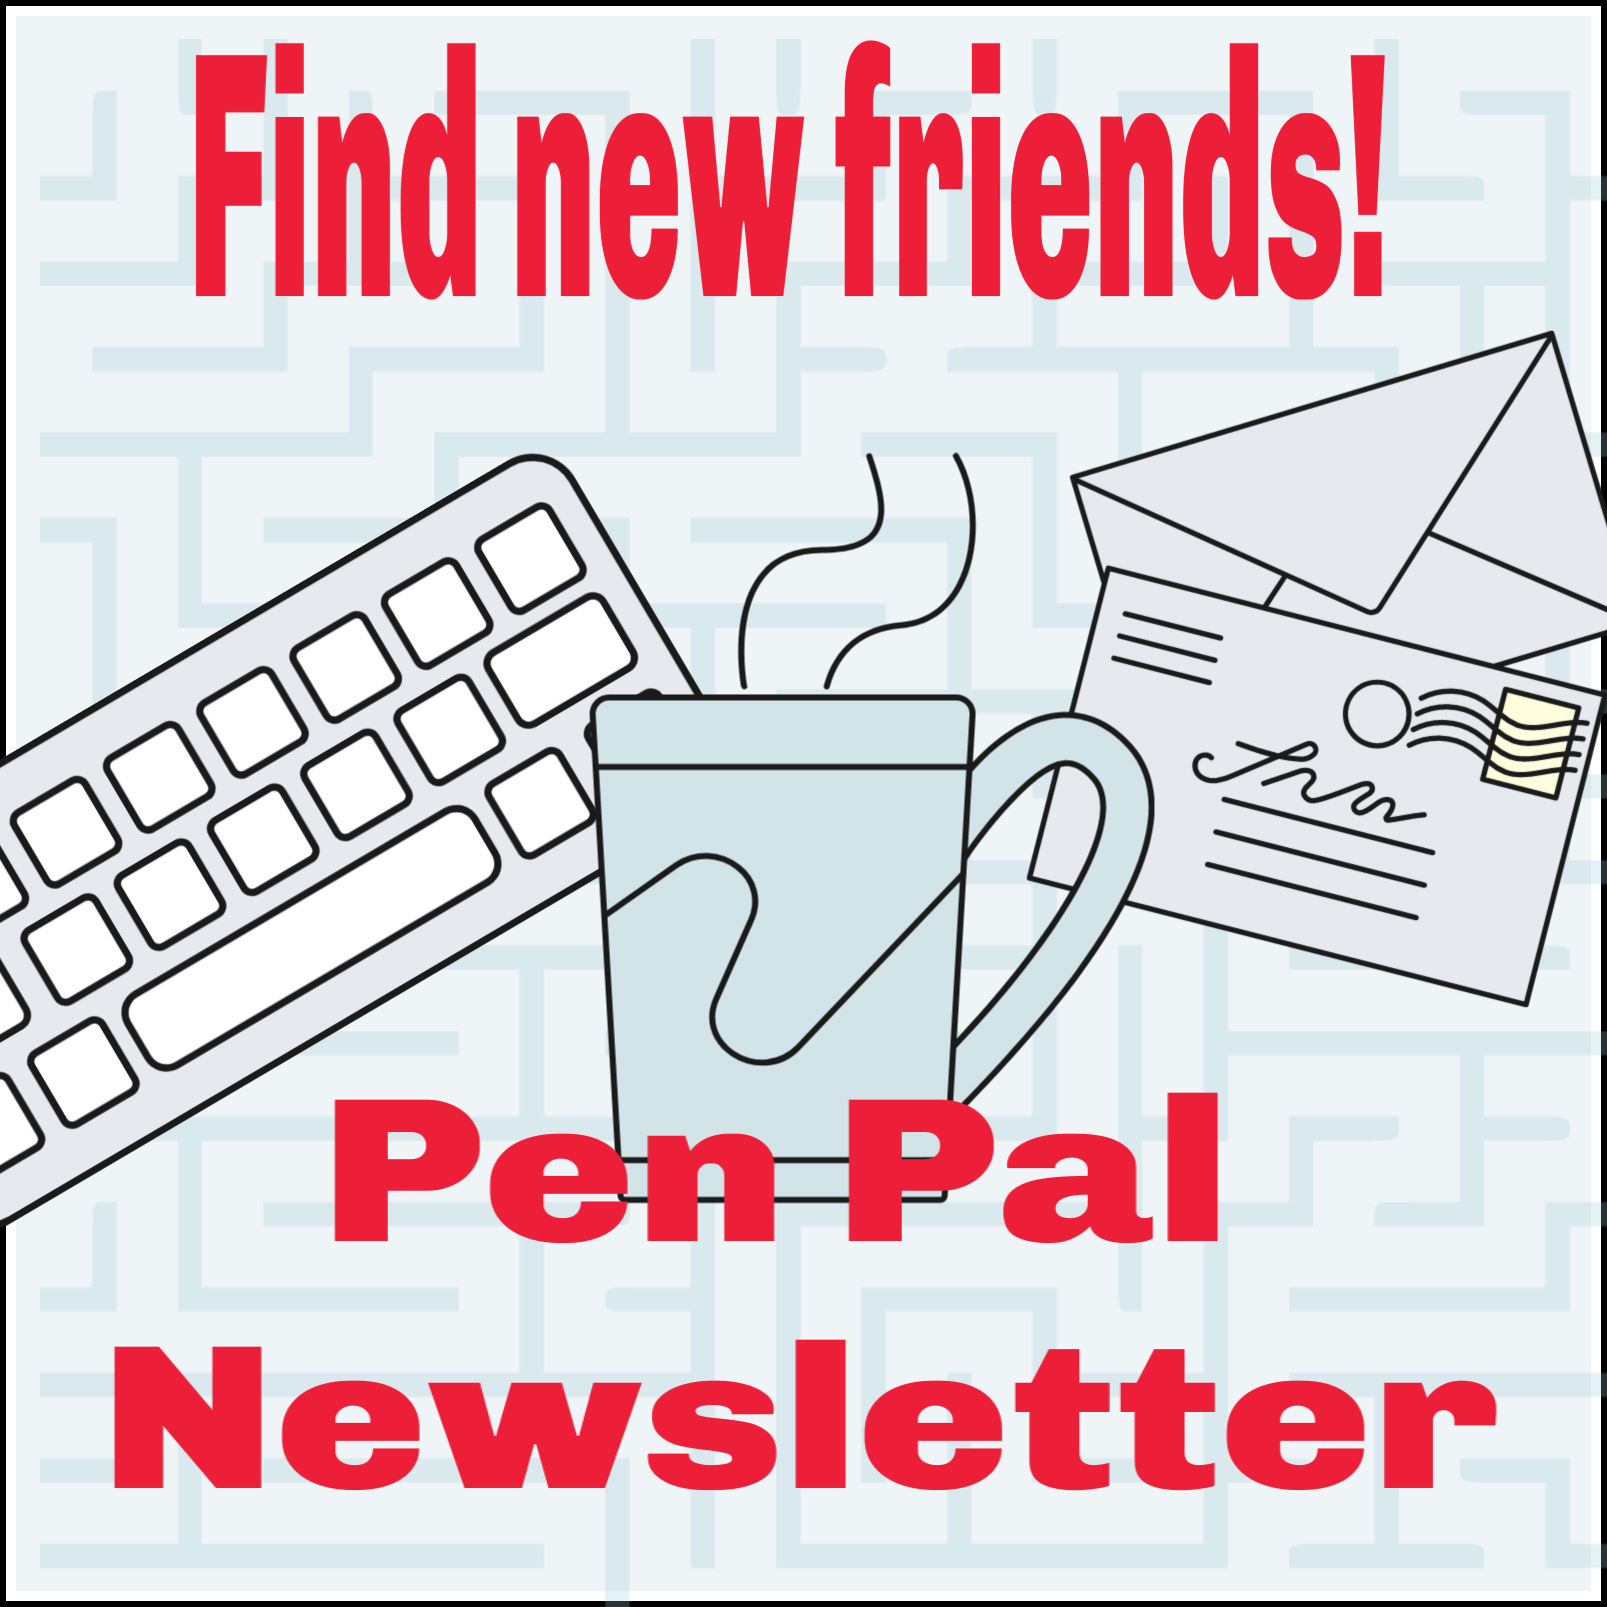 Retirement-Online com's Senior Pen Pal Quarterly